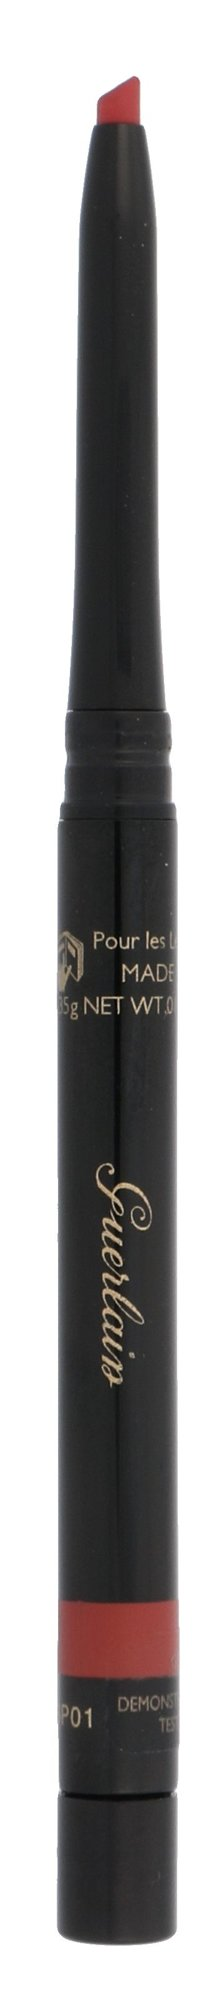 Guerlain The Lip Liner Cosmetic 0,35ml 45 Terre De Sienne